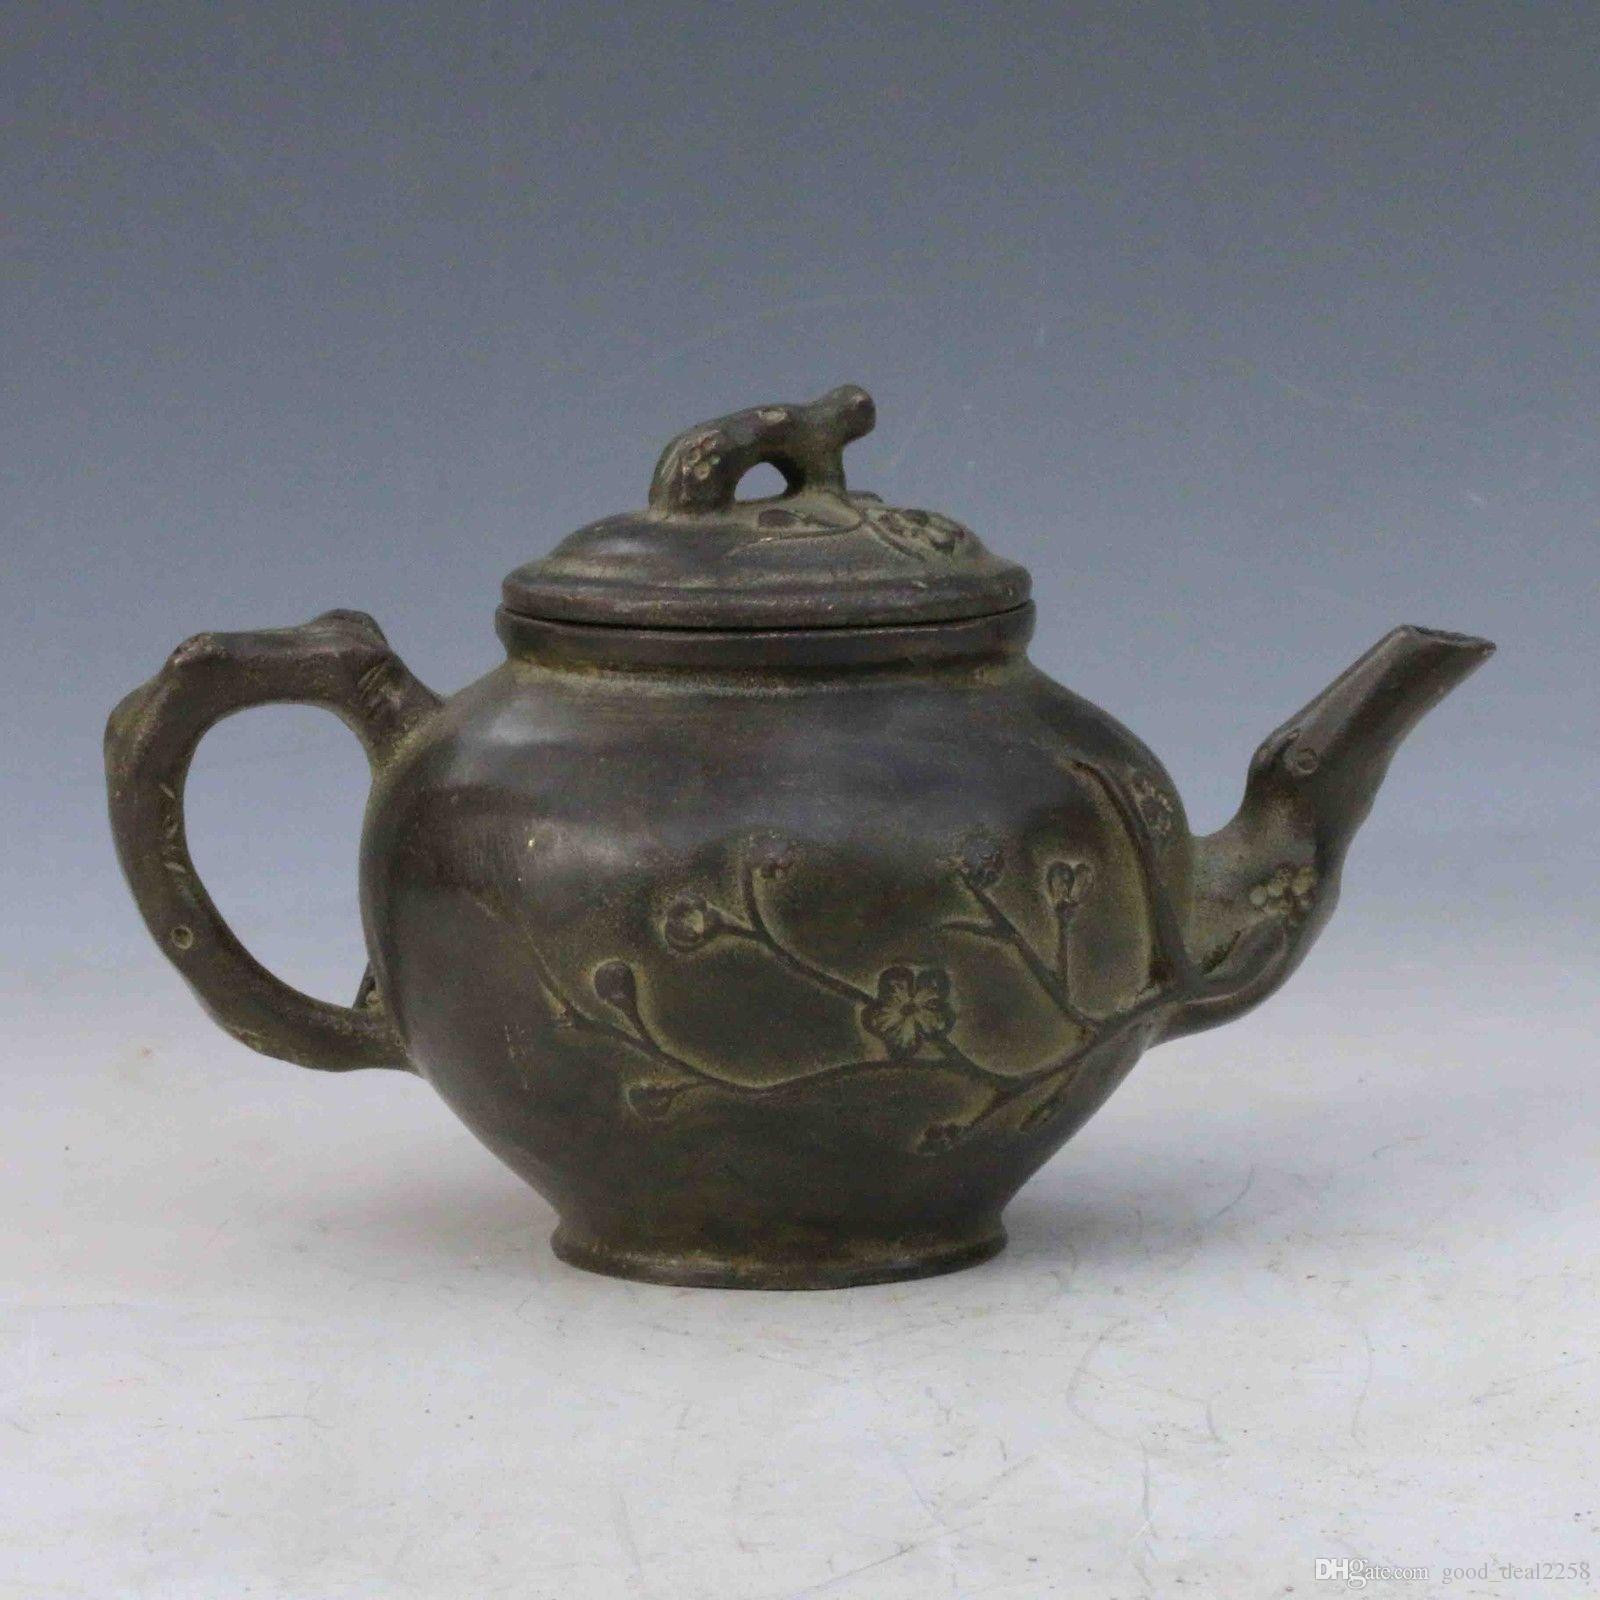 15 Wonderful Qianlong Vase 2021 free download qianlong vase of 2018 chinese collection bronze handwork carved plum teapot lid w inside 2018 chinese collection bronze handwork carved plum teapot lid w qianlong mark from good deal2258 33